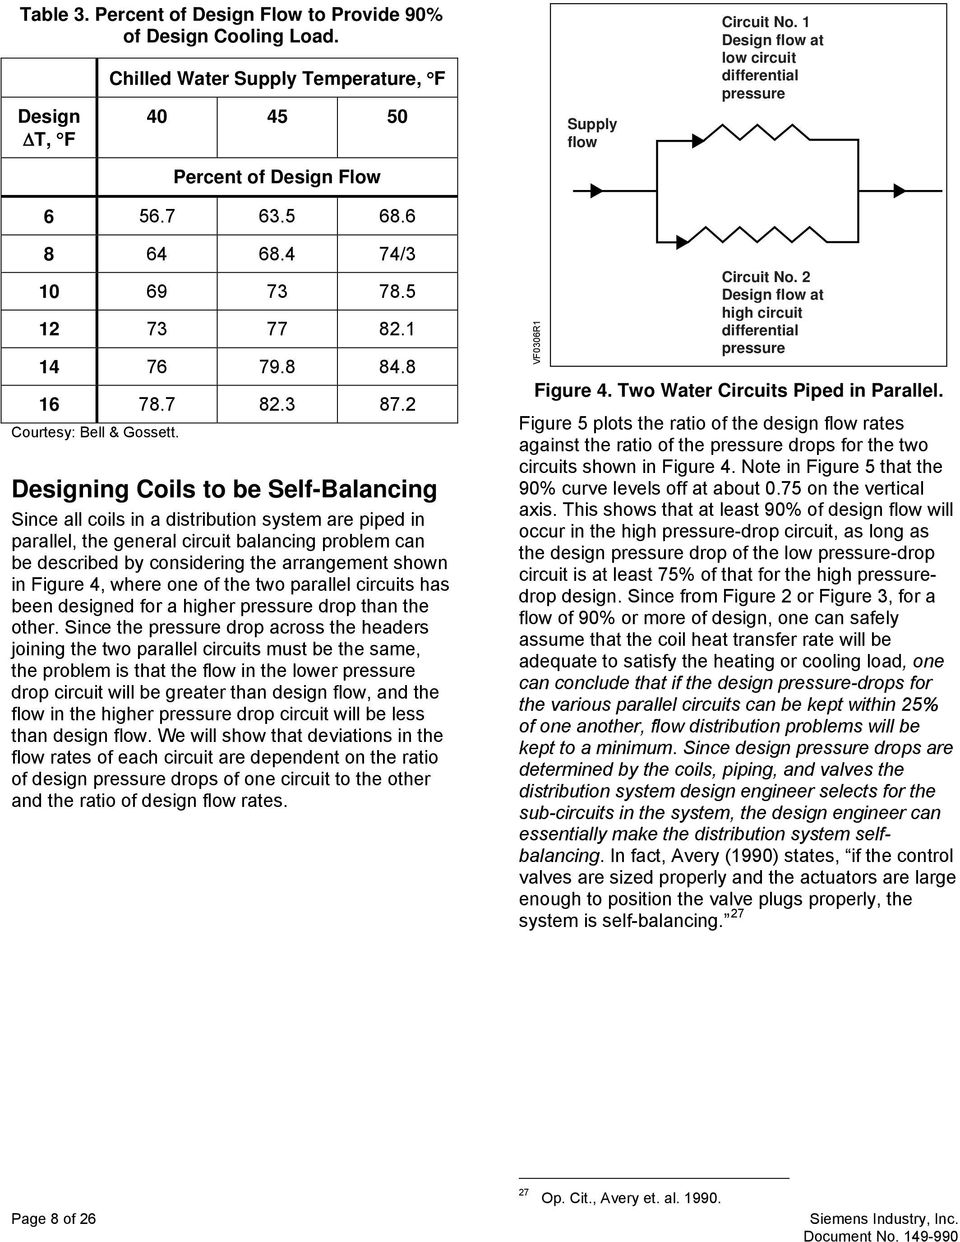 Designing Coils to be Self-Balancing Since all coils in a distribution system are piped in parallel, the general circuit balancing problem can be described by considering the arrangement shown in